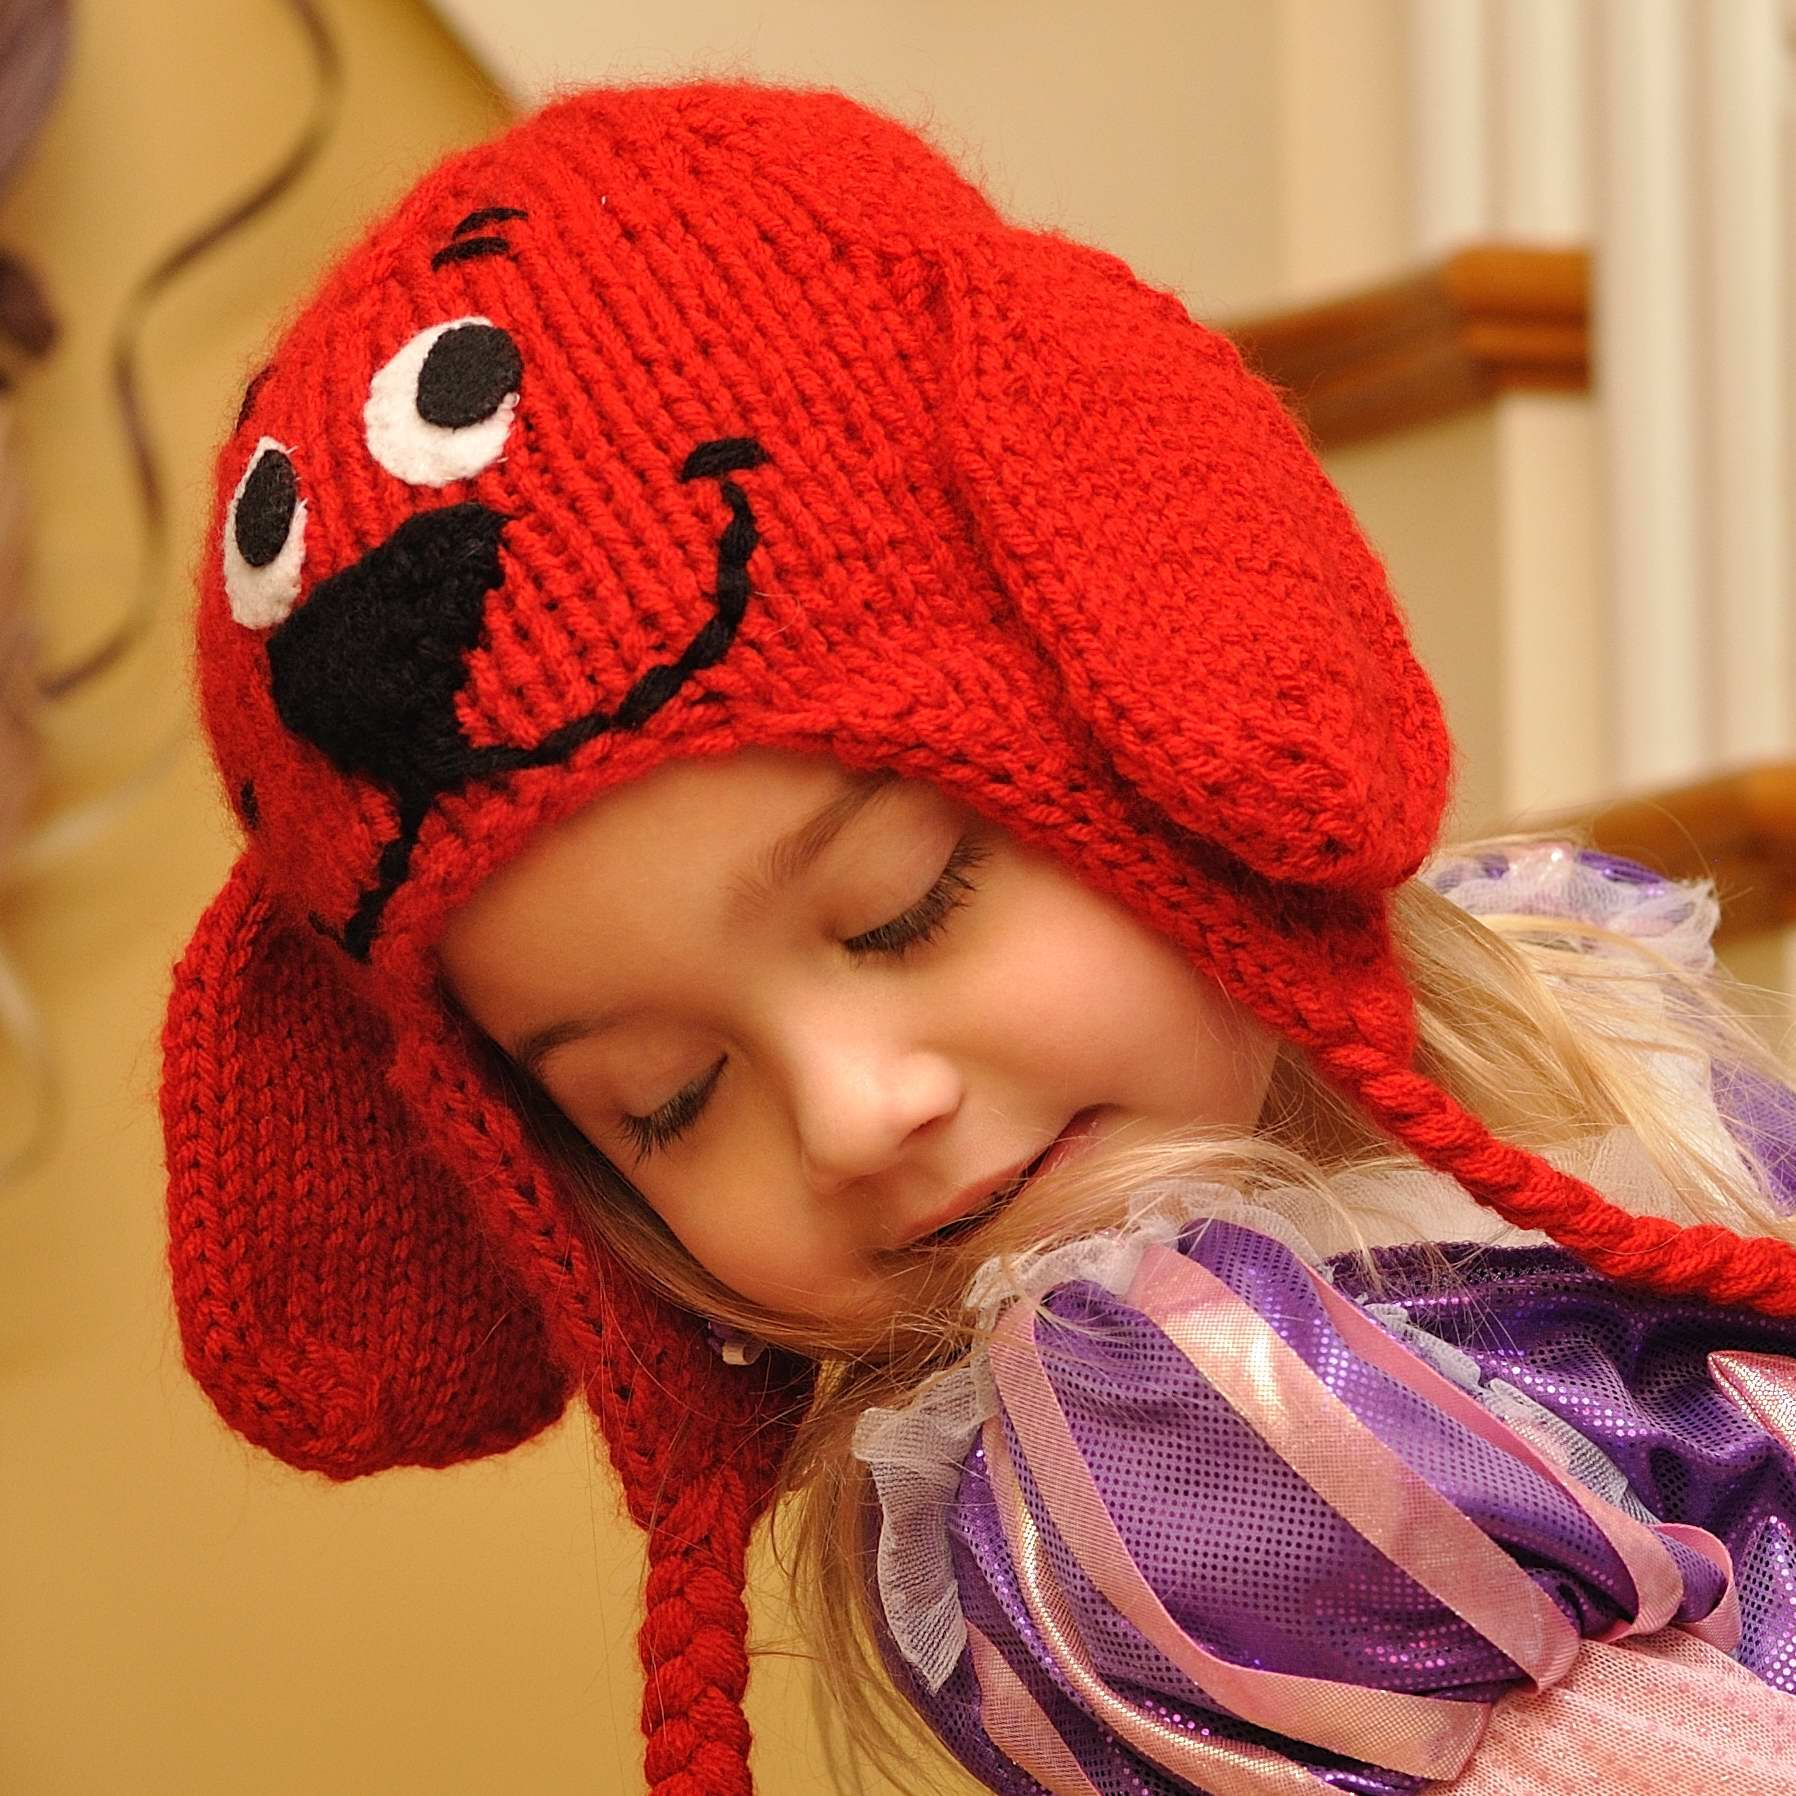 Big red dog earflap hat 1 4 years red dog patterns and crochet big red dog earflap hat 1 4 years hat patternsknitting bankloansurffo Gallery